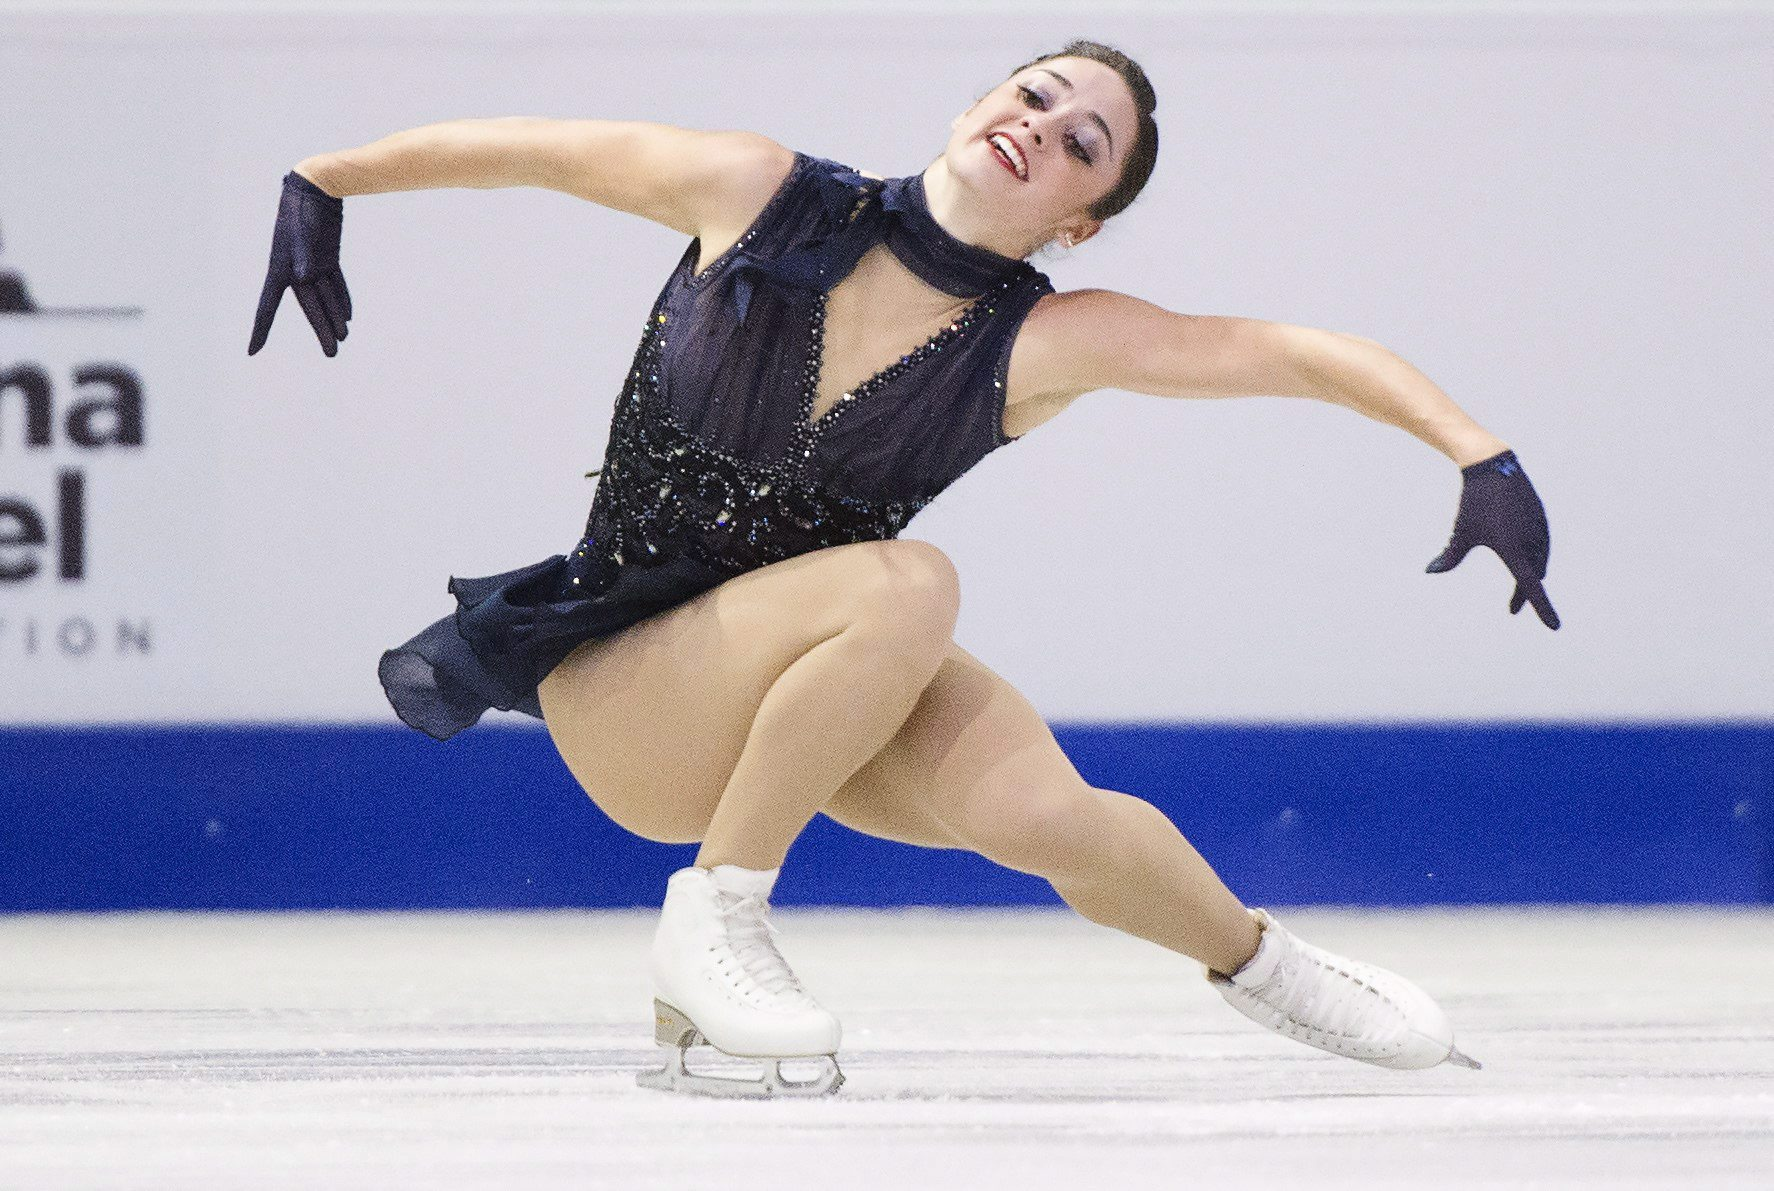 Team Canada - Kaetlyn Osmond - Skate Canada International